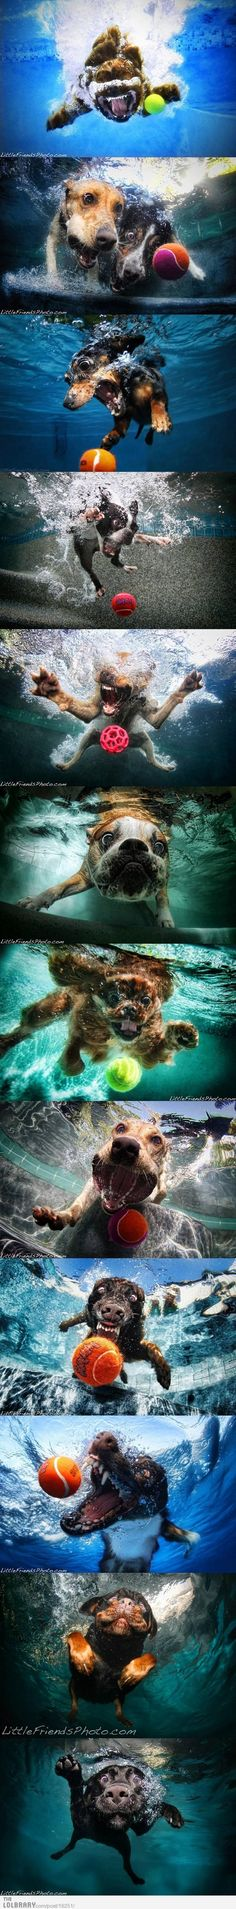 Is this what I look like?!?                  Amazingly funny and cute underwater dog pictures!